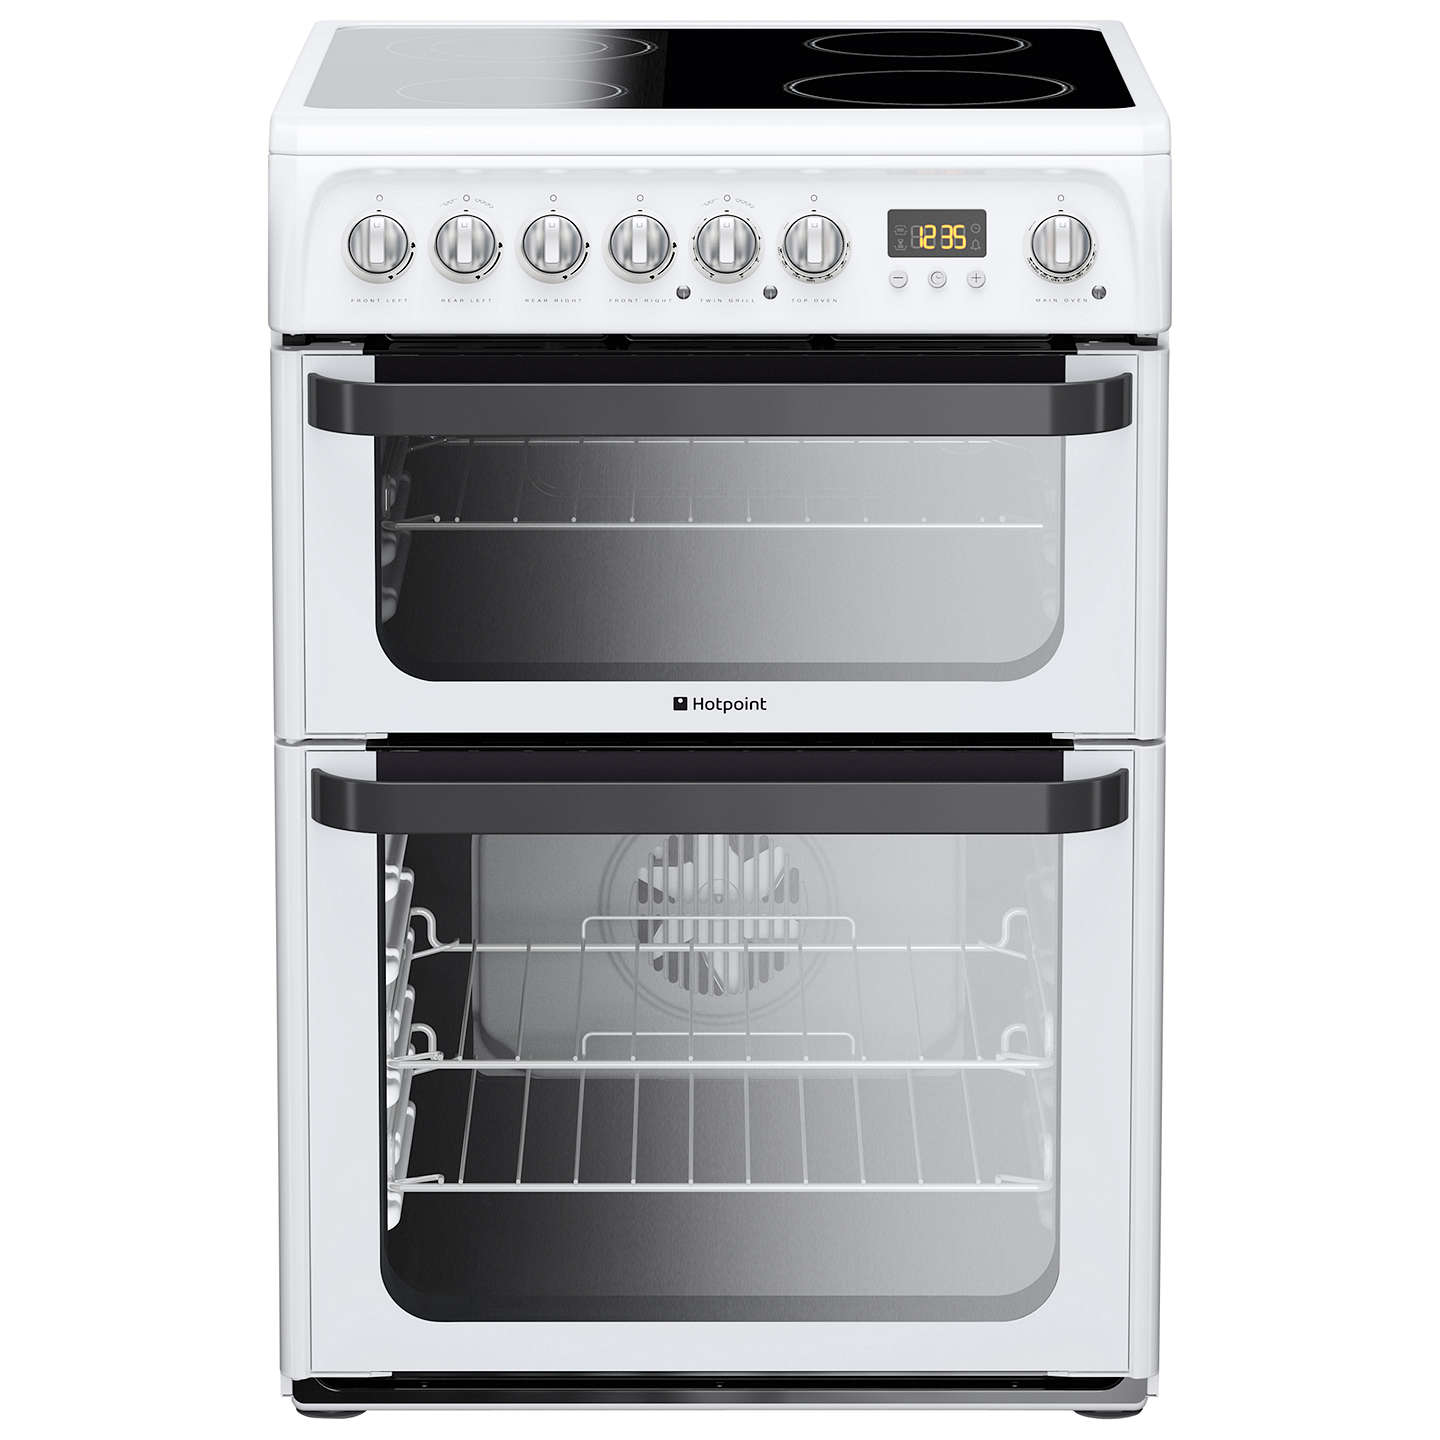 Hotpoint JLE60P Signature Electric Cooker, White at John Lewis